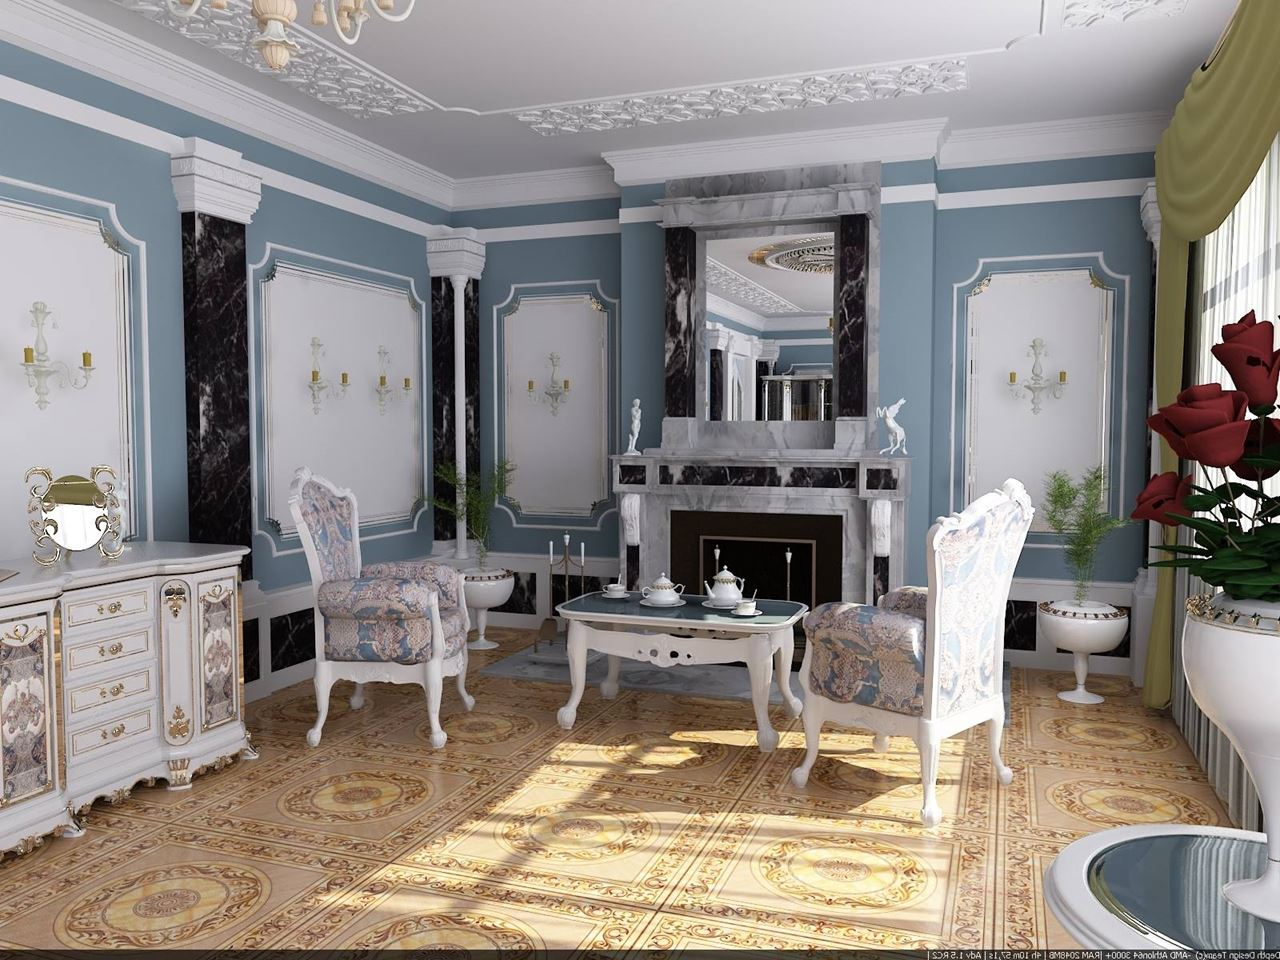 Rococo style interior design ideas for Interior design styles living room 2015